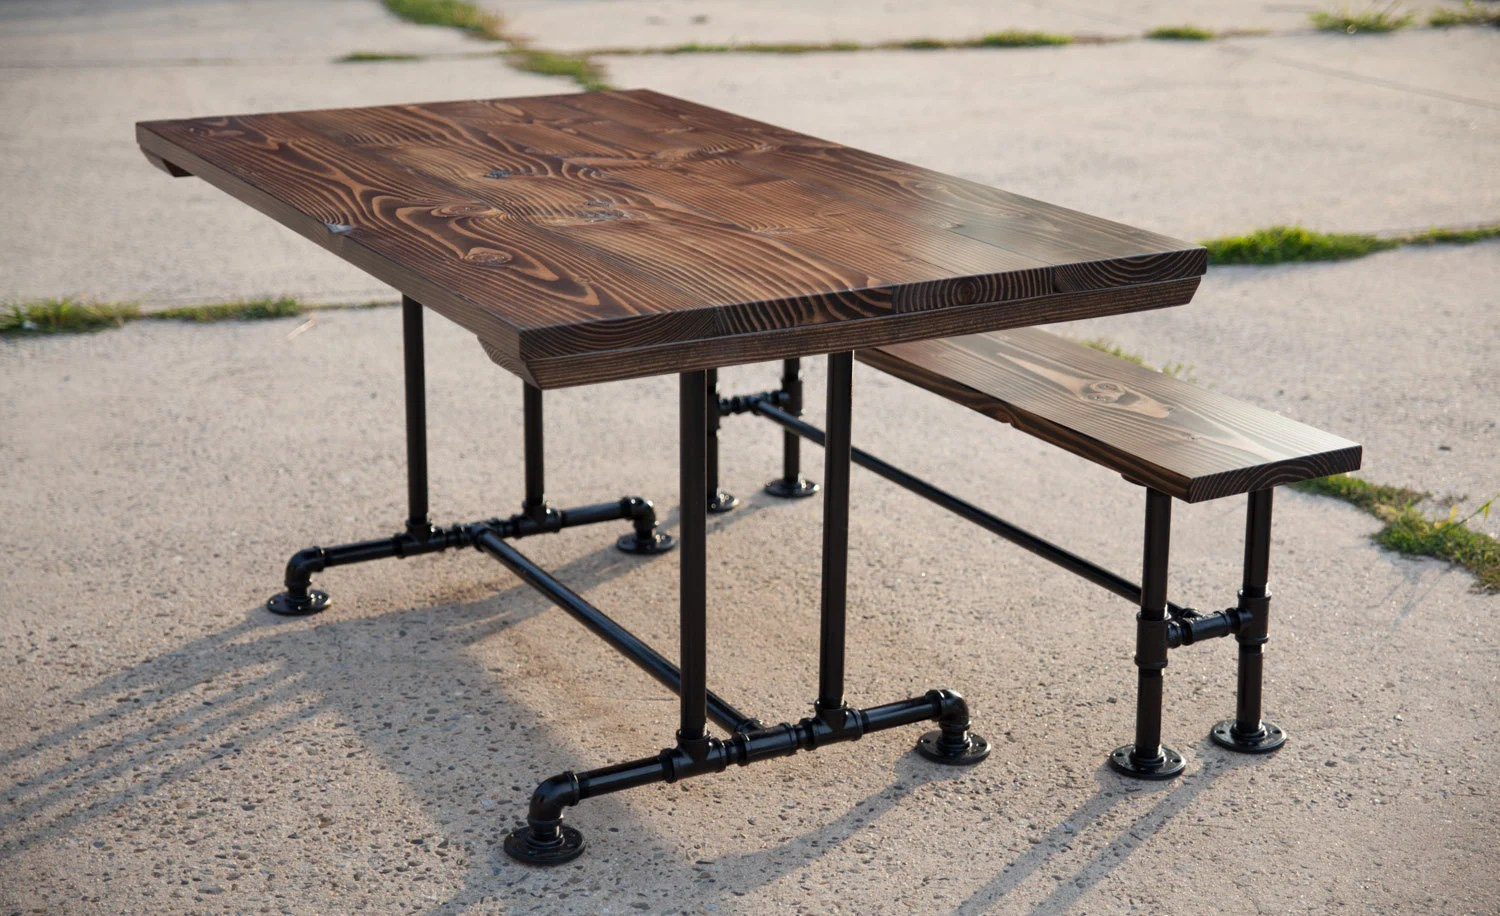 industrial style dining table industrial kitchen table Industrialchictable2 Industrialchictable1 Industrialchictable3